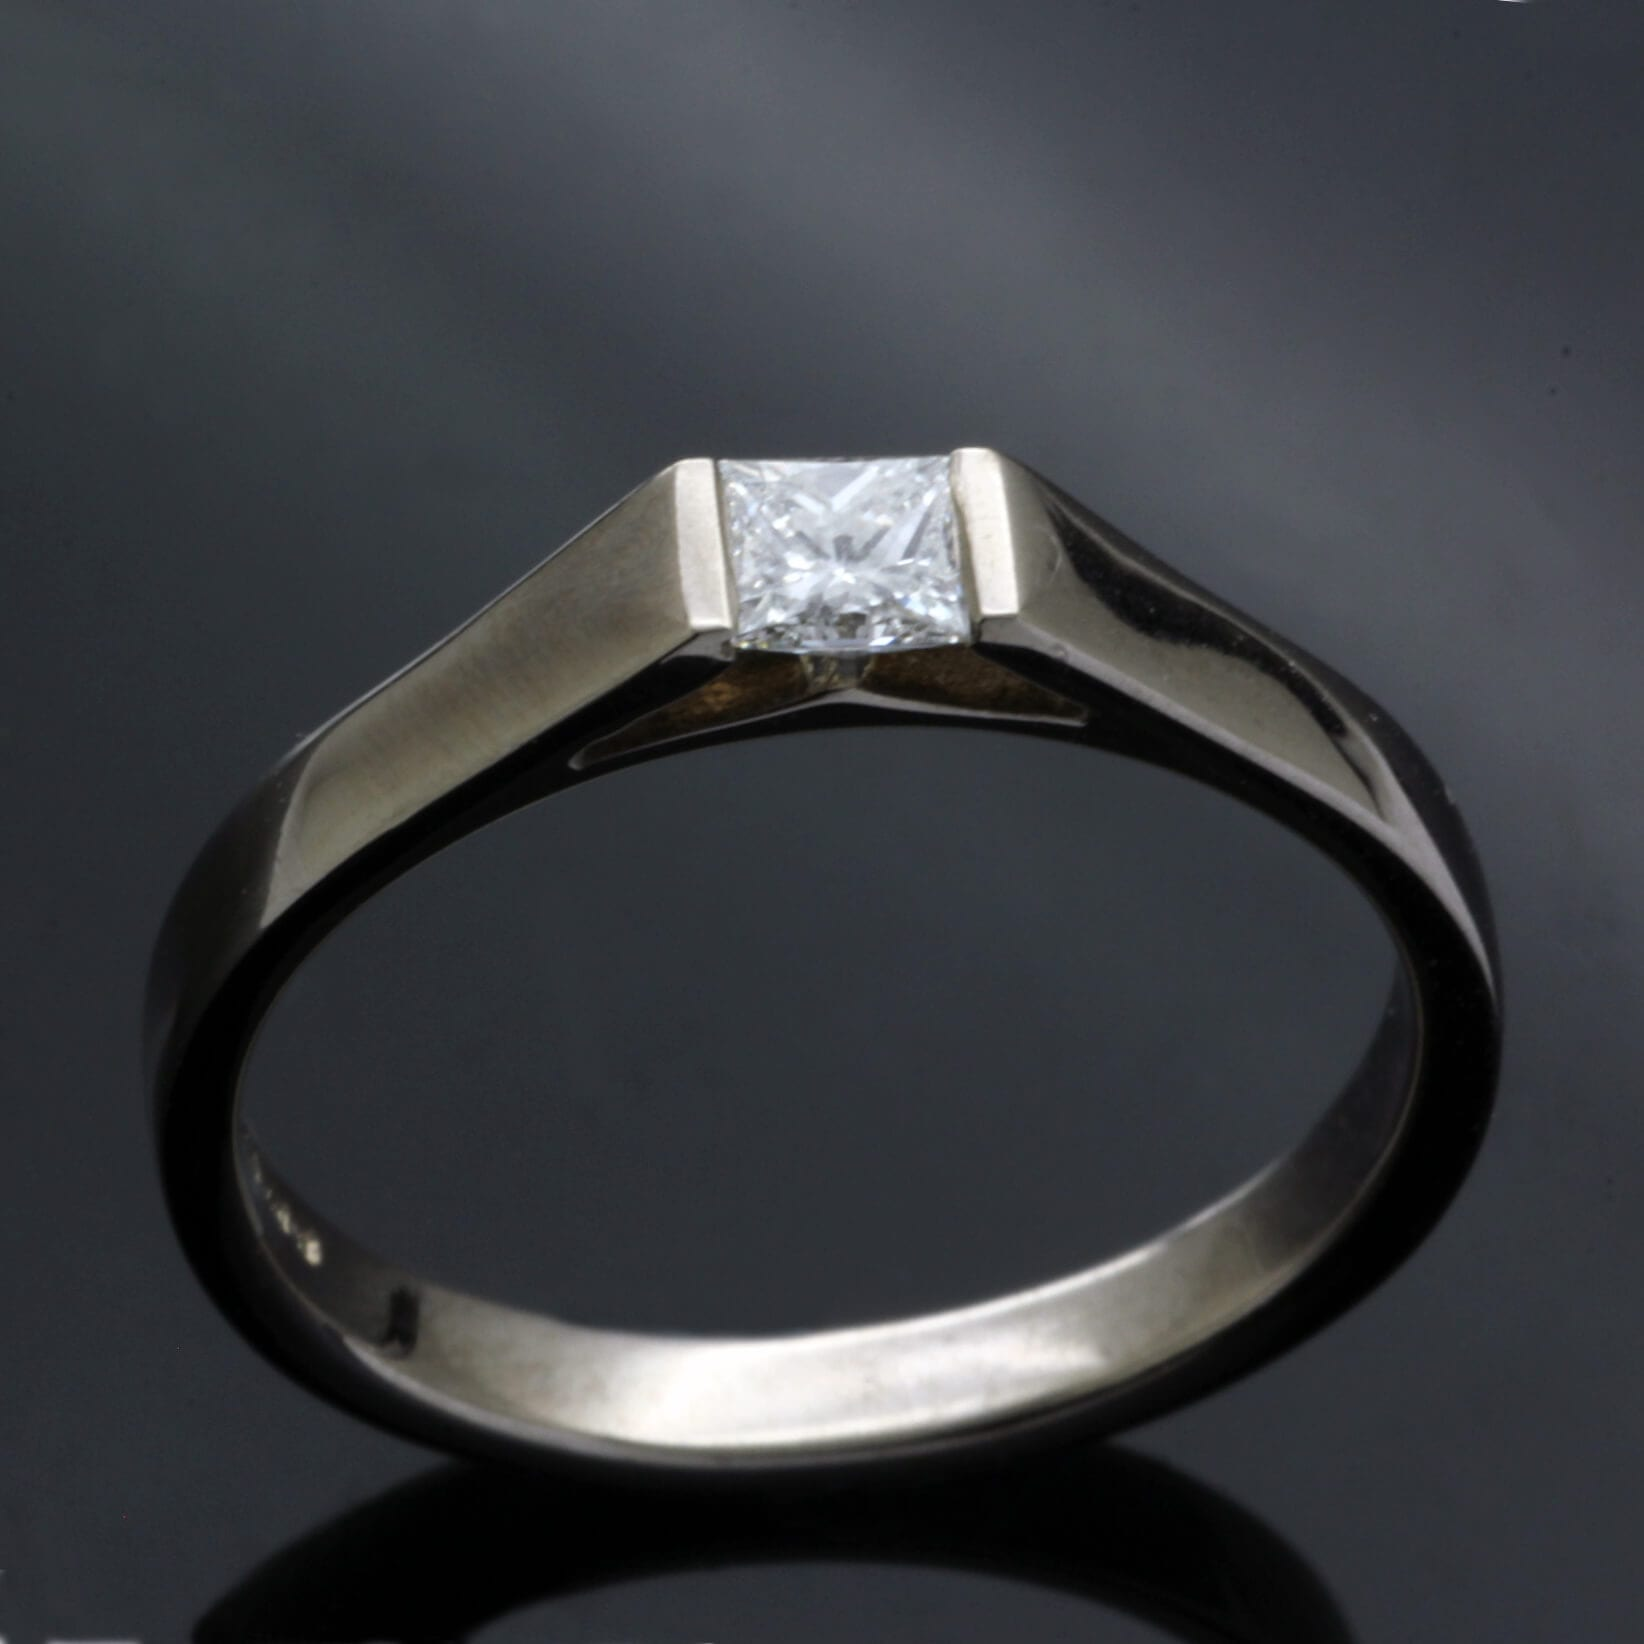 Polished 18ct White Gold Princess cut Diamond engagement ring